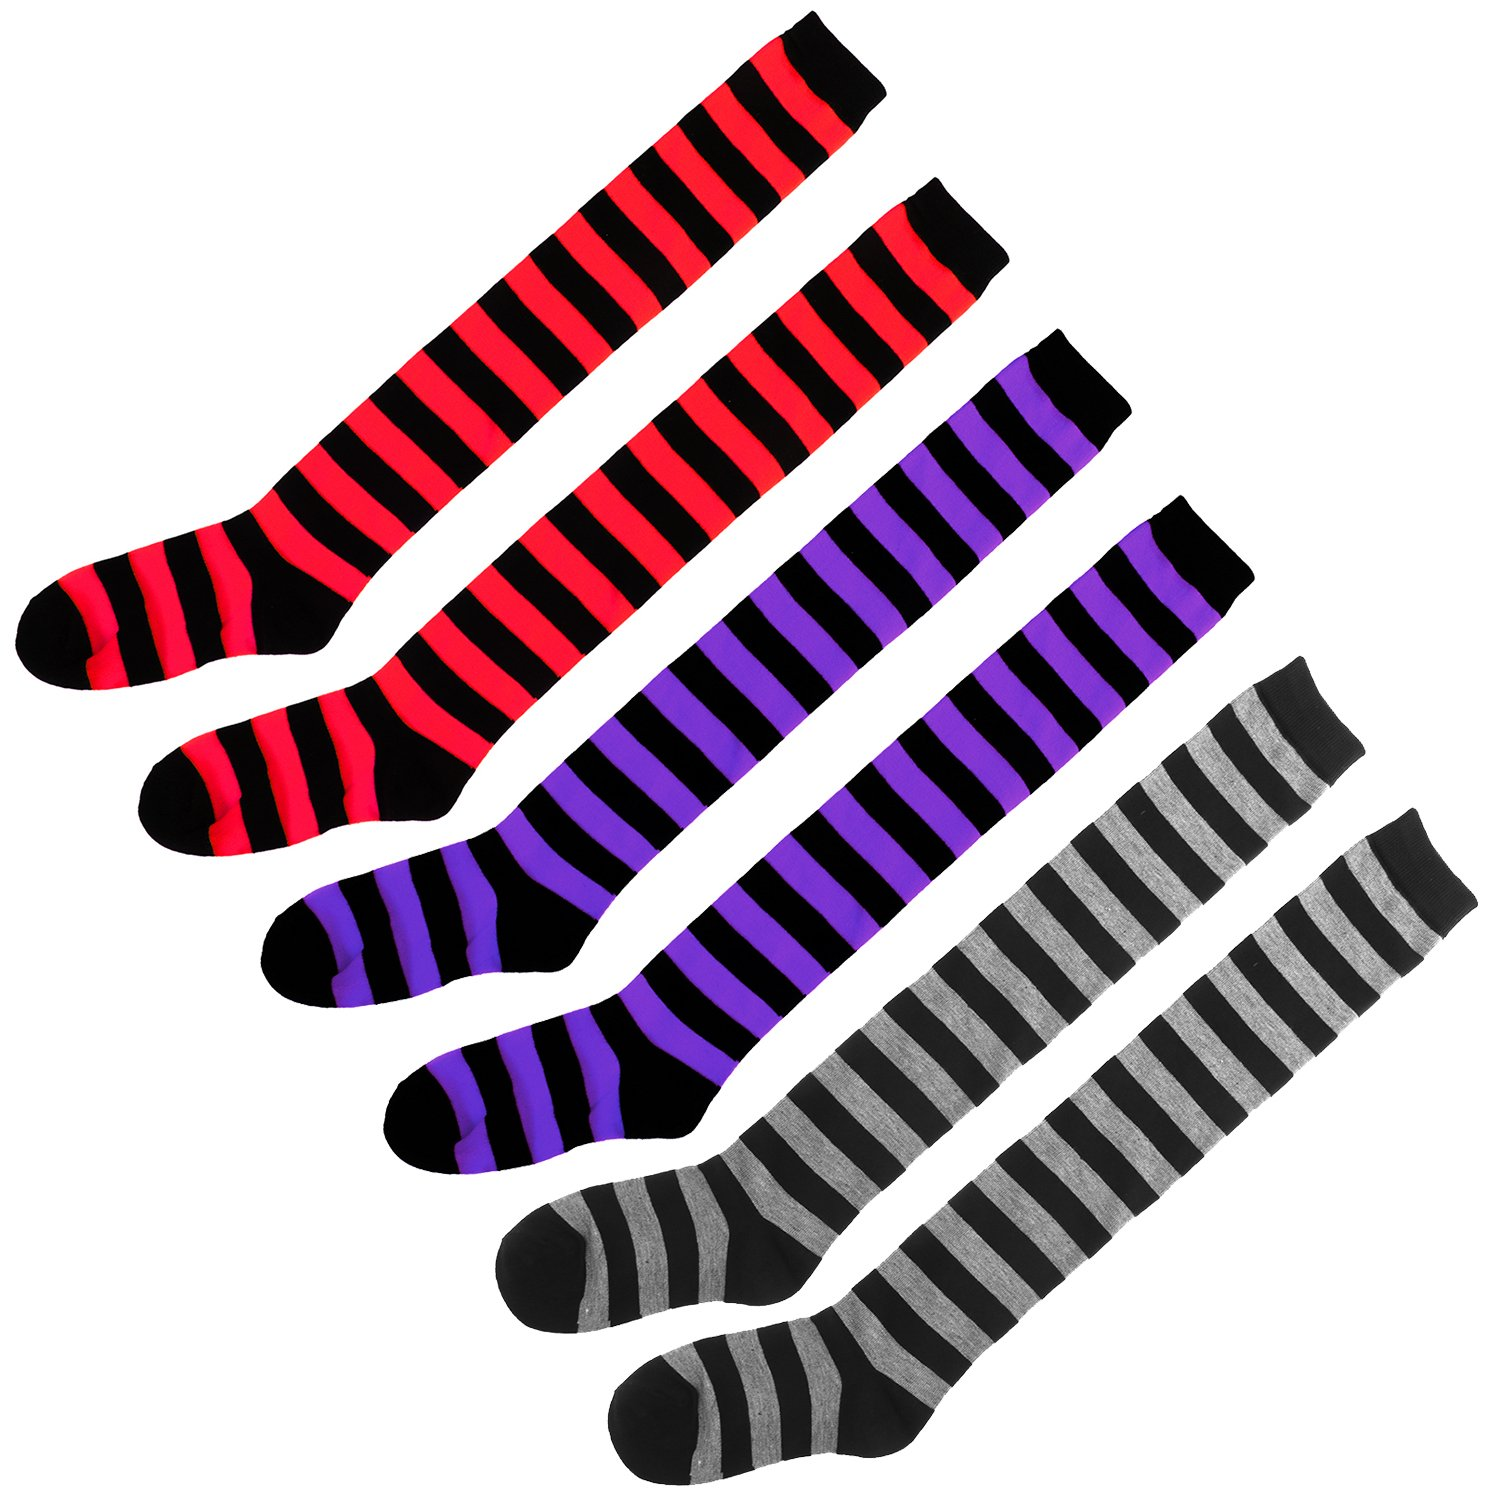 3 Pairs Wide Stripes Womens Extra Long Striped Socks(Over Knee High Opaque Stockings) (Black&Purple Black&Grey Black&Red), OneSize) by eforpretty (Image #3)